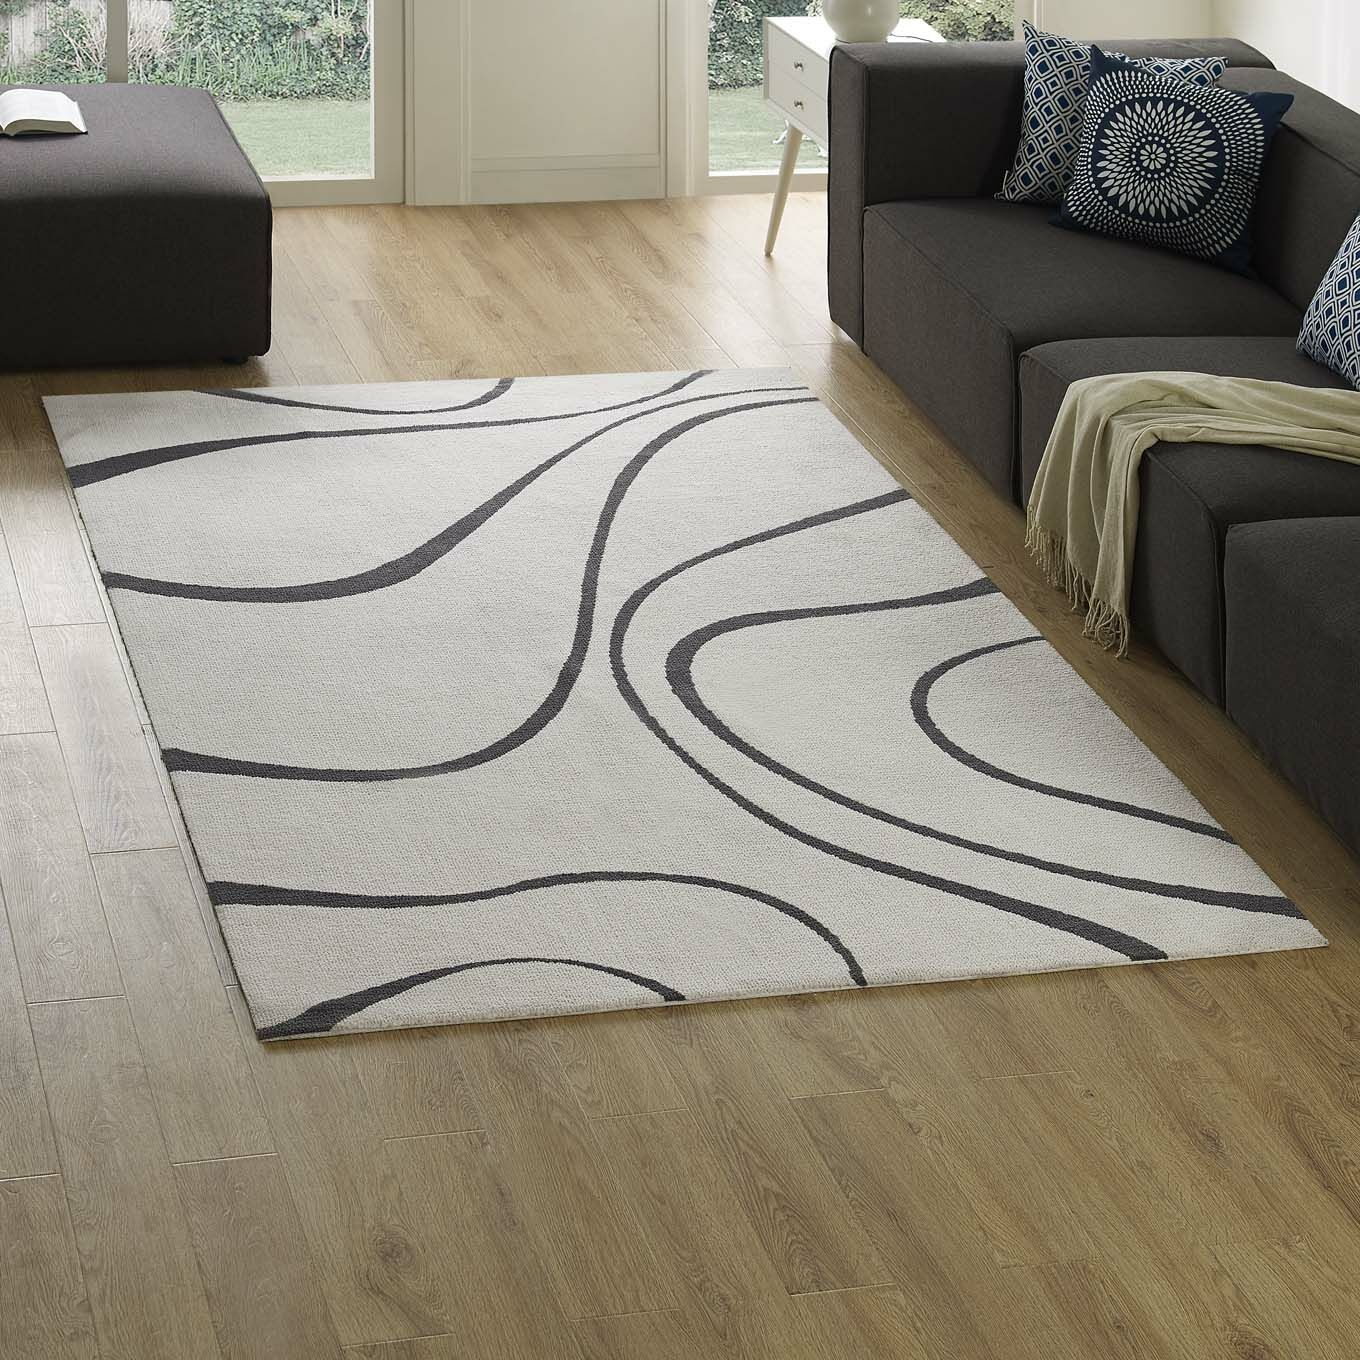 Winvian Abstract Swirl Ivory/Charcoal Area Rug Rug Size: Rectangle 5' x 8'